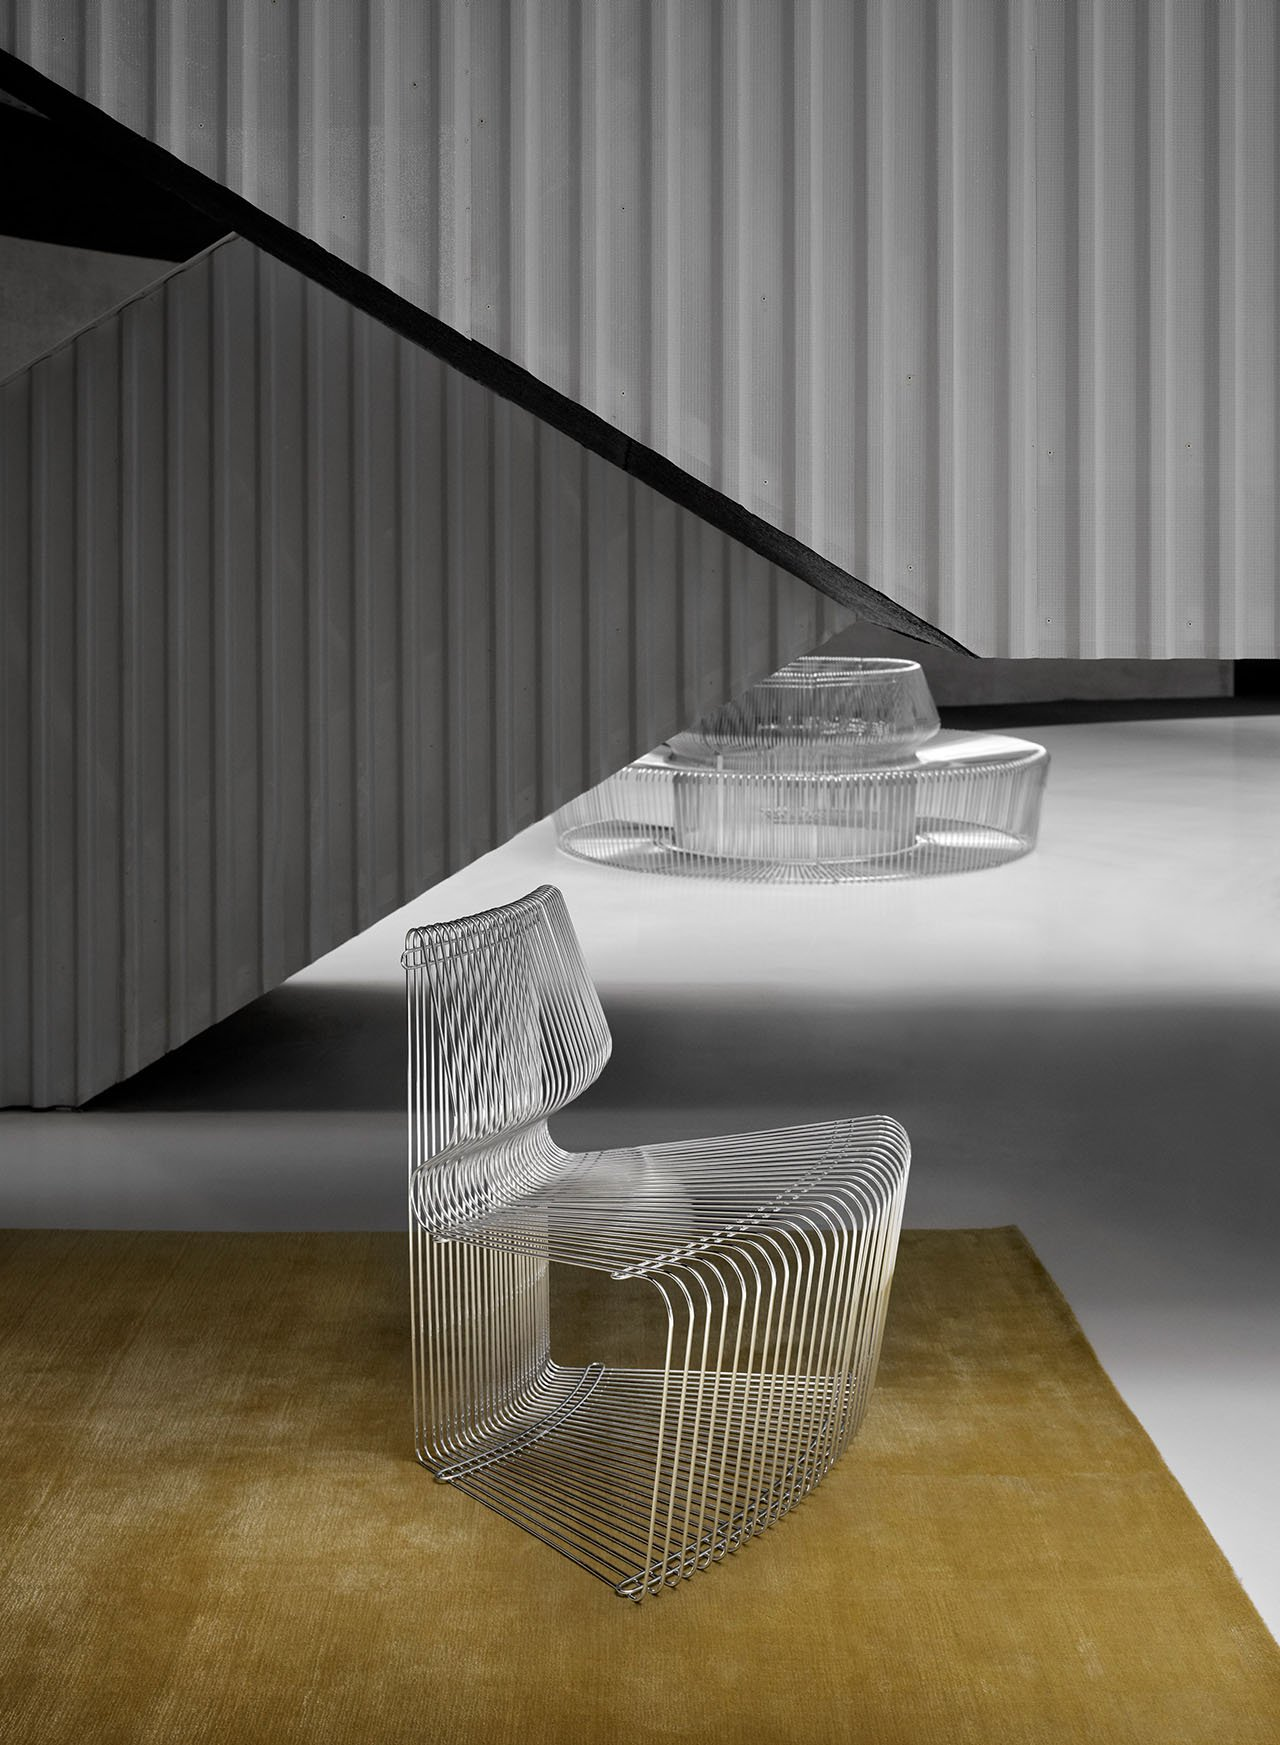 Milan Design Week 2019 The Best Design Pieces - Montana milan design week Milan Design Week 2019: The Best Design Pieces Milan Design Week 2019 The Best Design Pieces Montana